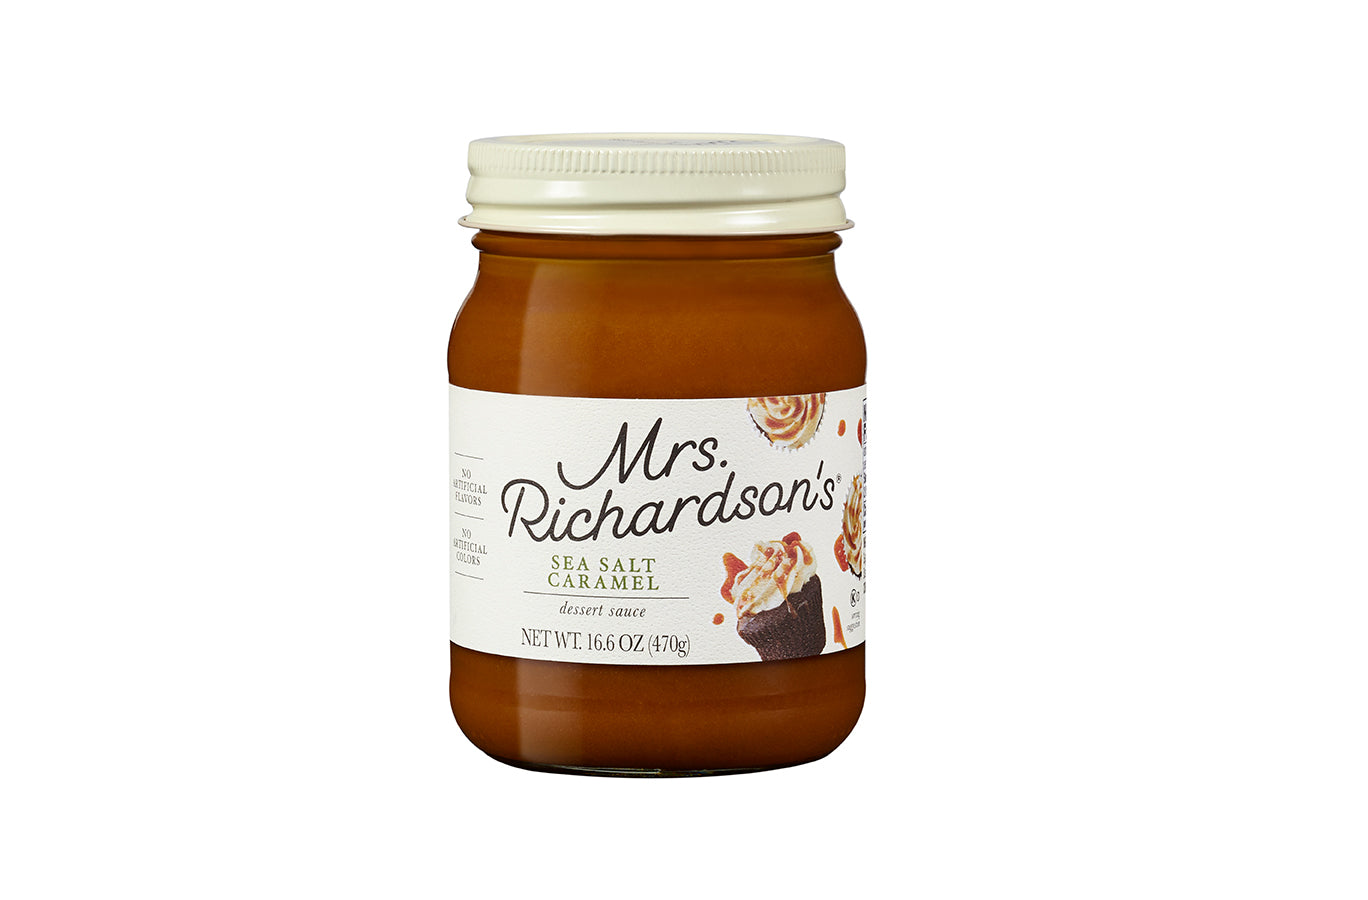 Mrs. Richardson's Sea Salt Caramel Topping, 17.5 OZ (Pack of 6)